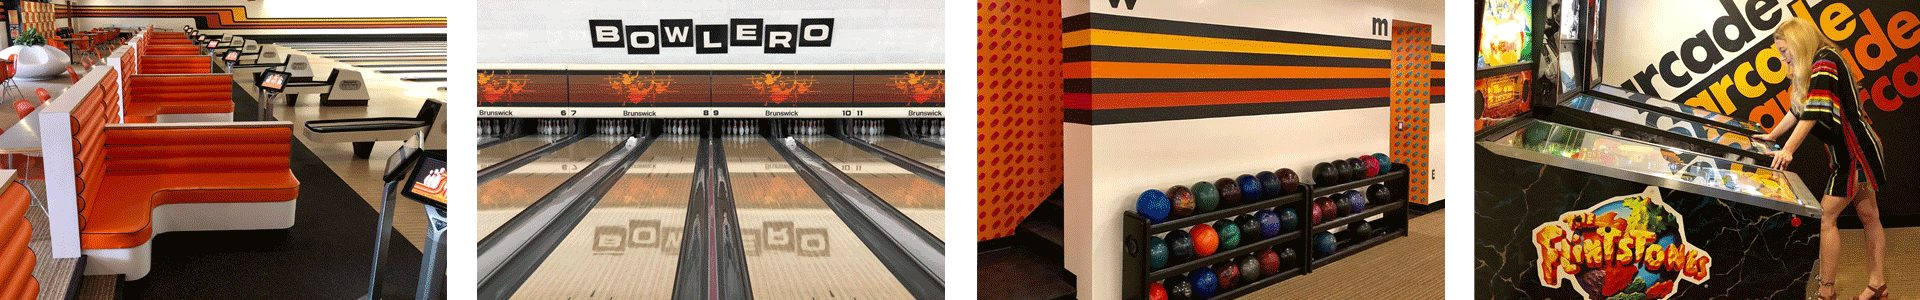 Bowlero Lanes Photo Banner